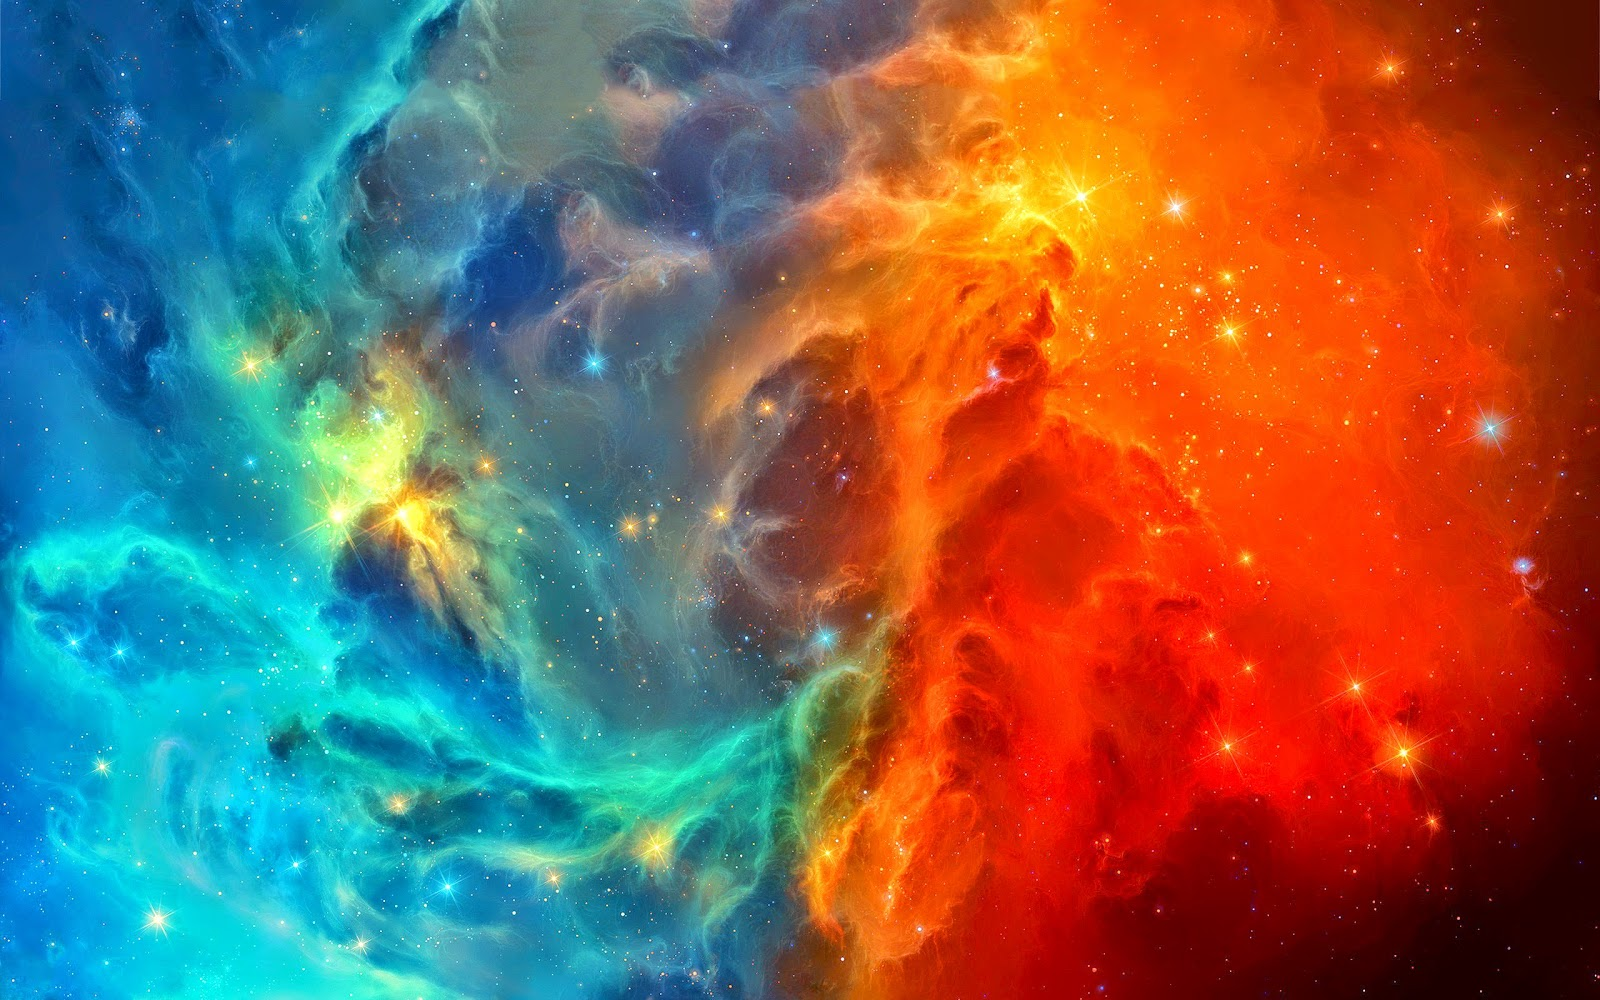 Space Hd Wallpapers Earth Blog